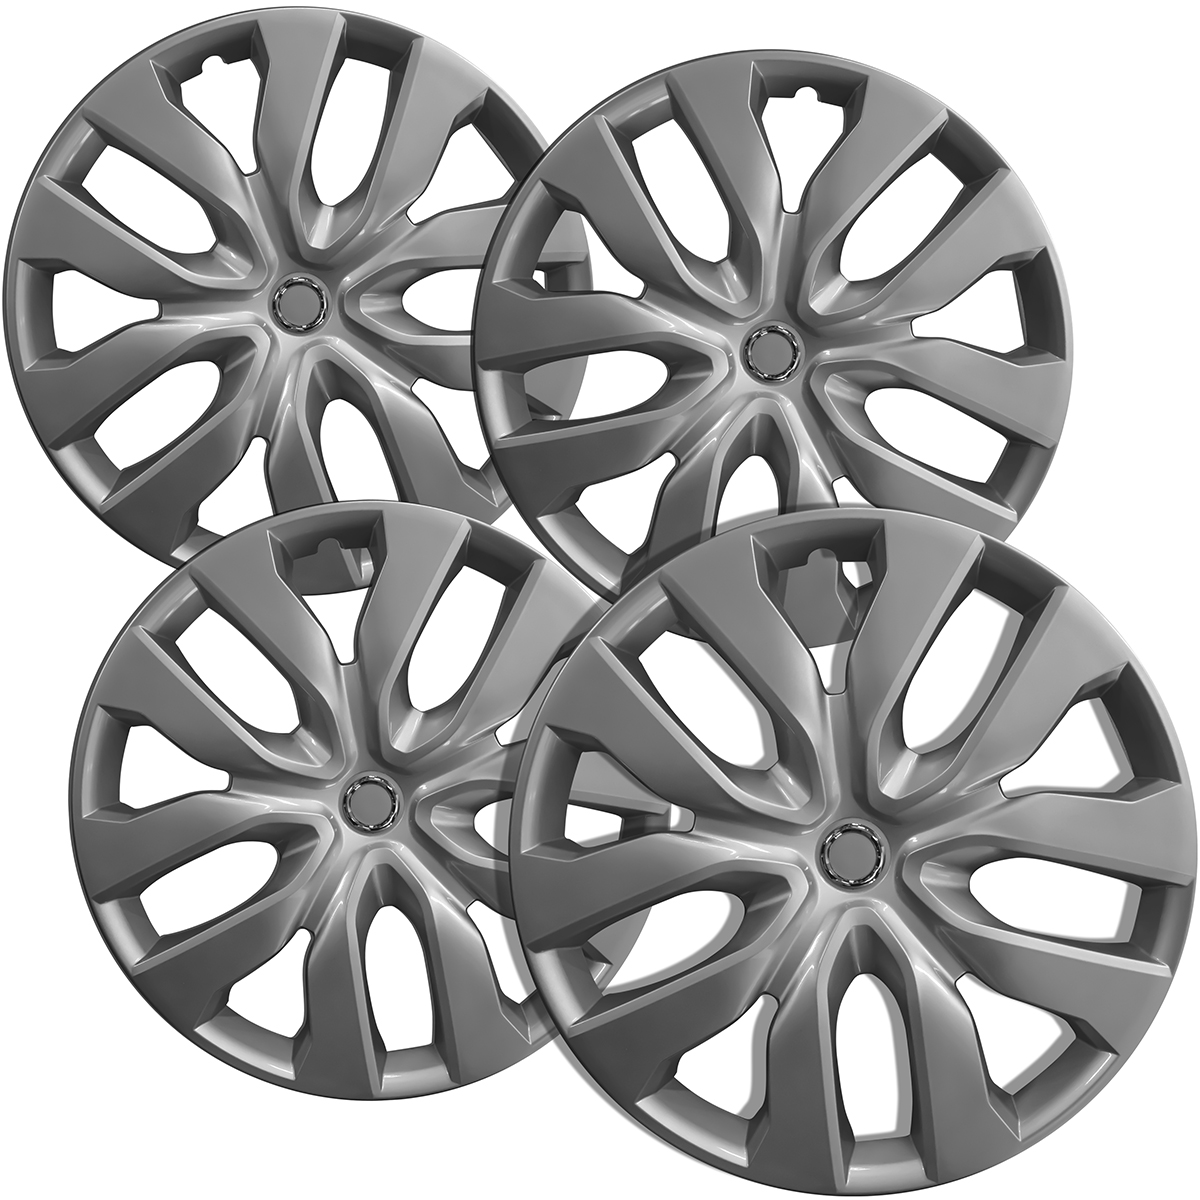 Hubcaps Fits 14 17 Nissan Rogue 17 Inch Silver